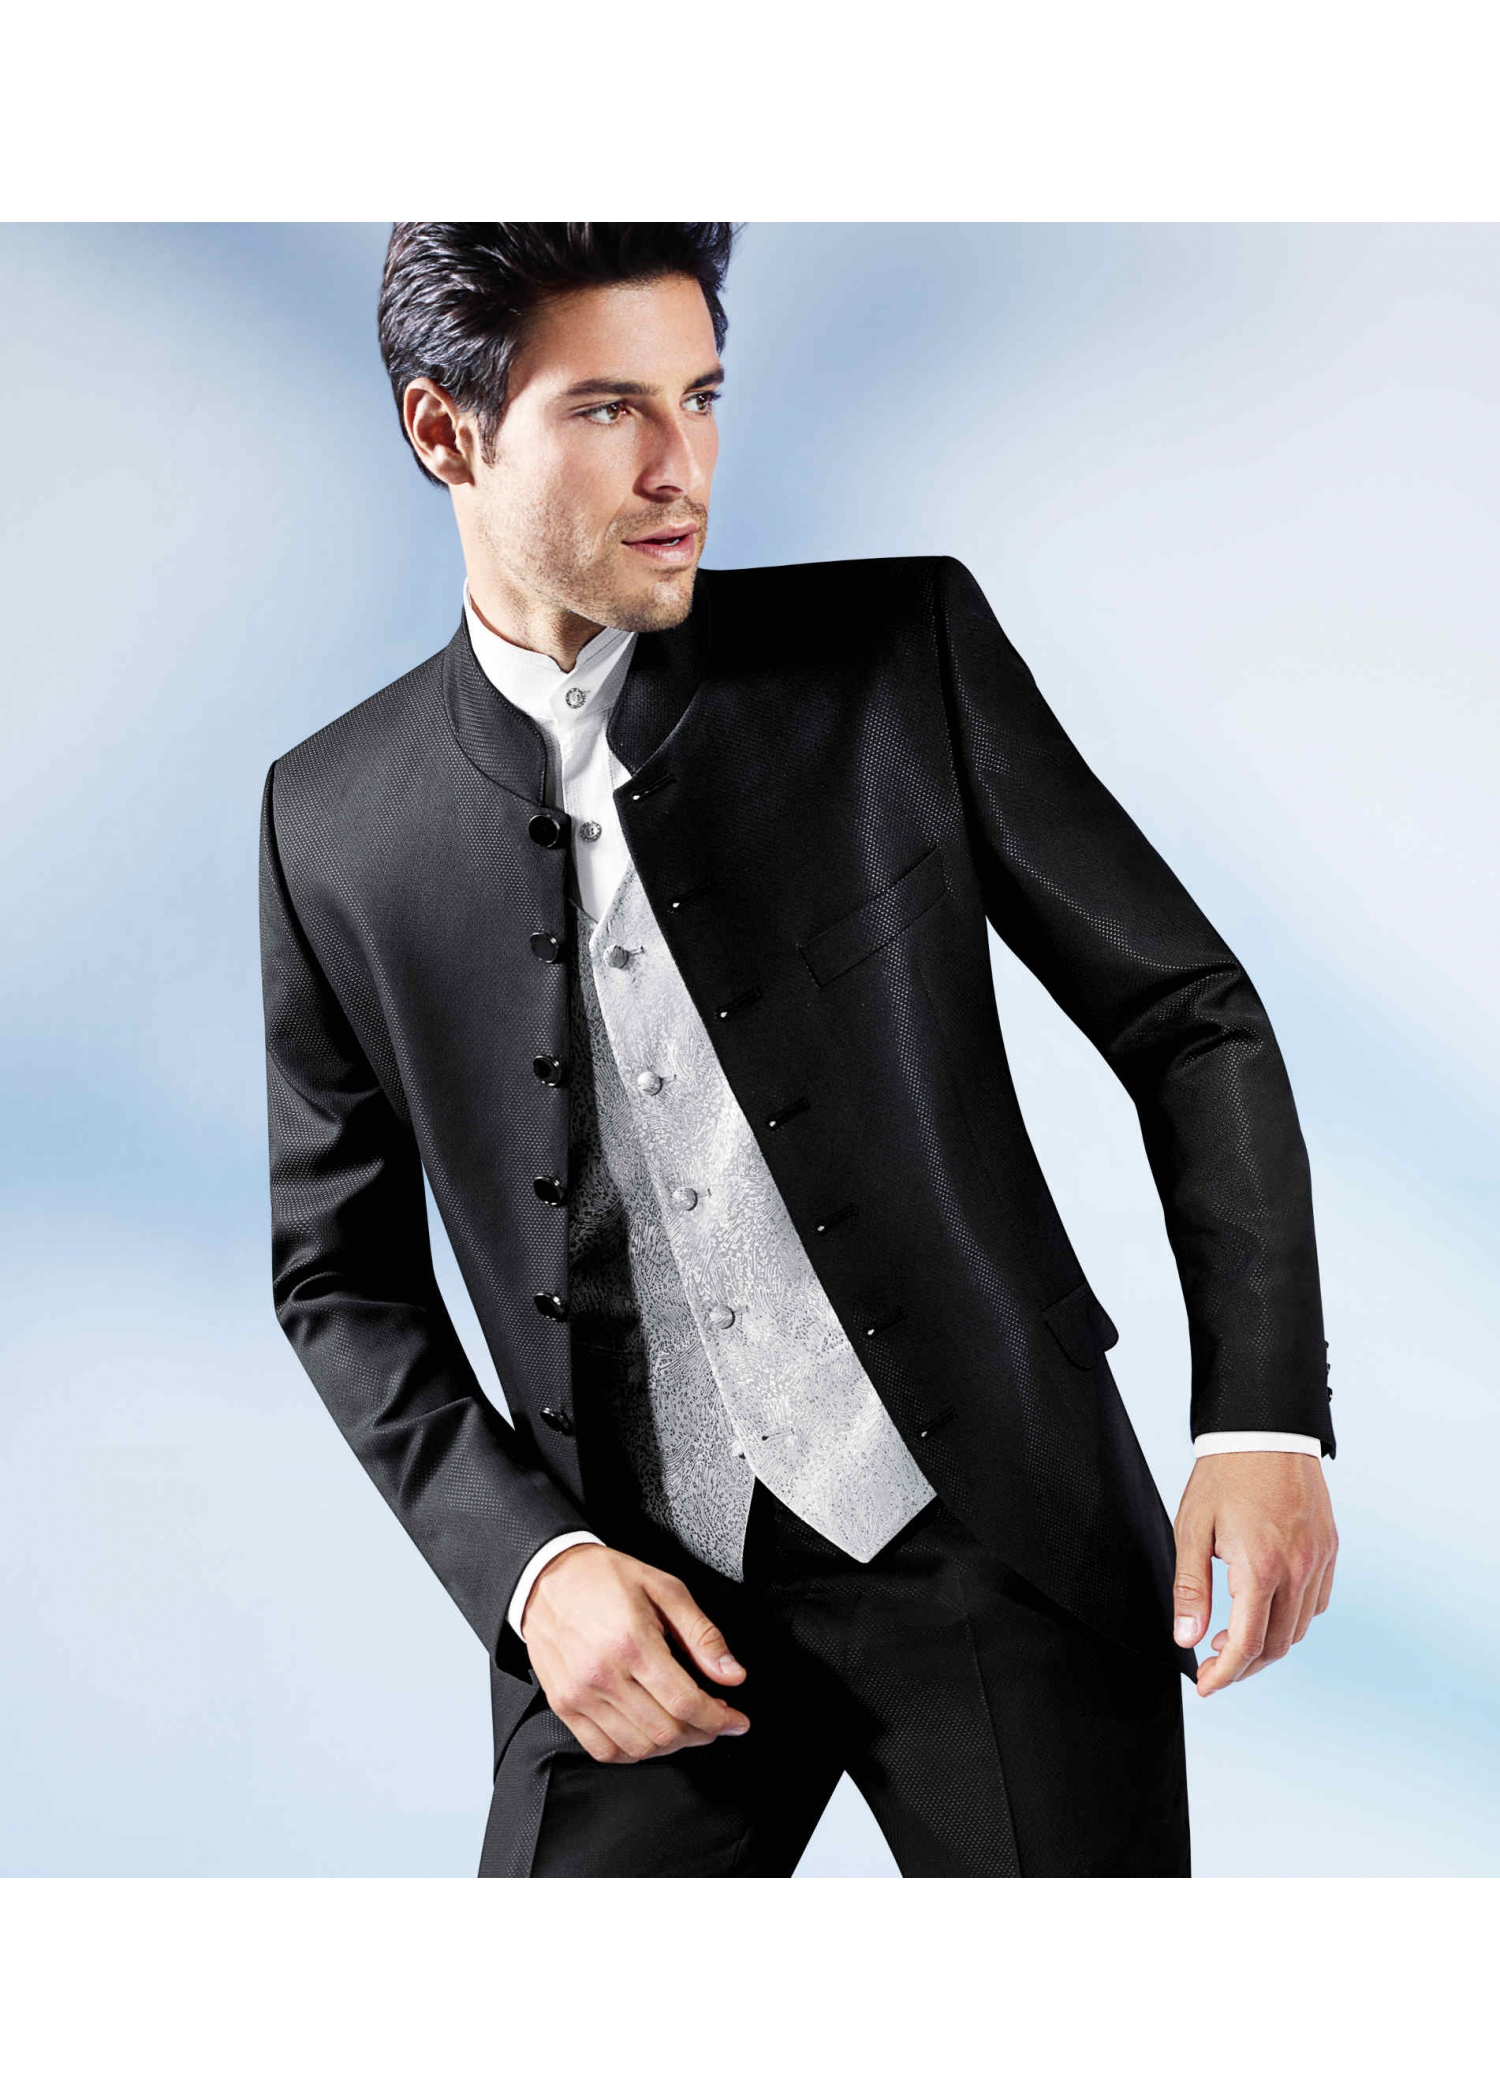 black stand up collar suit in a subtle pattern with